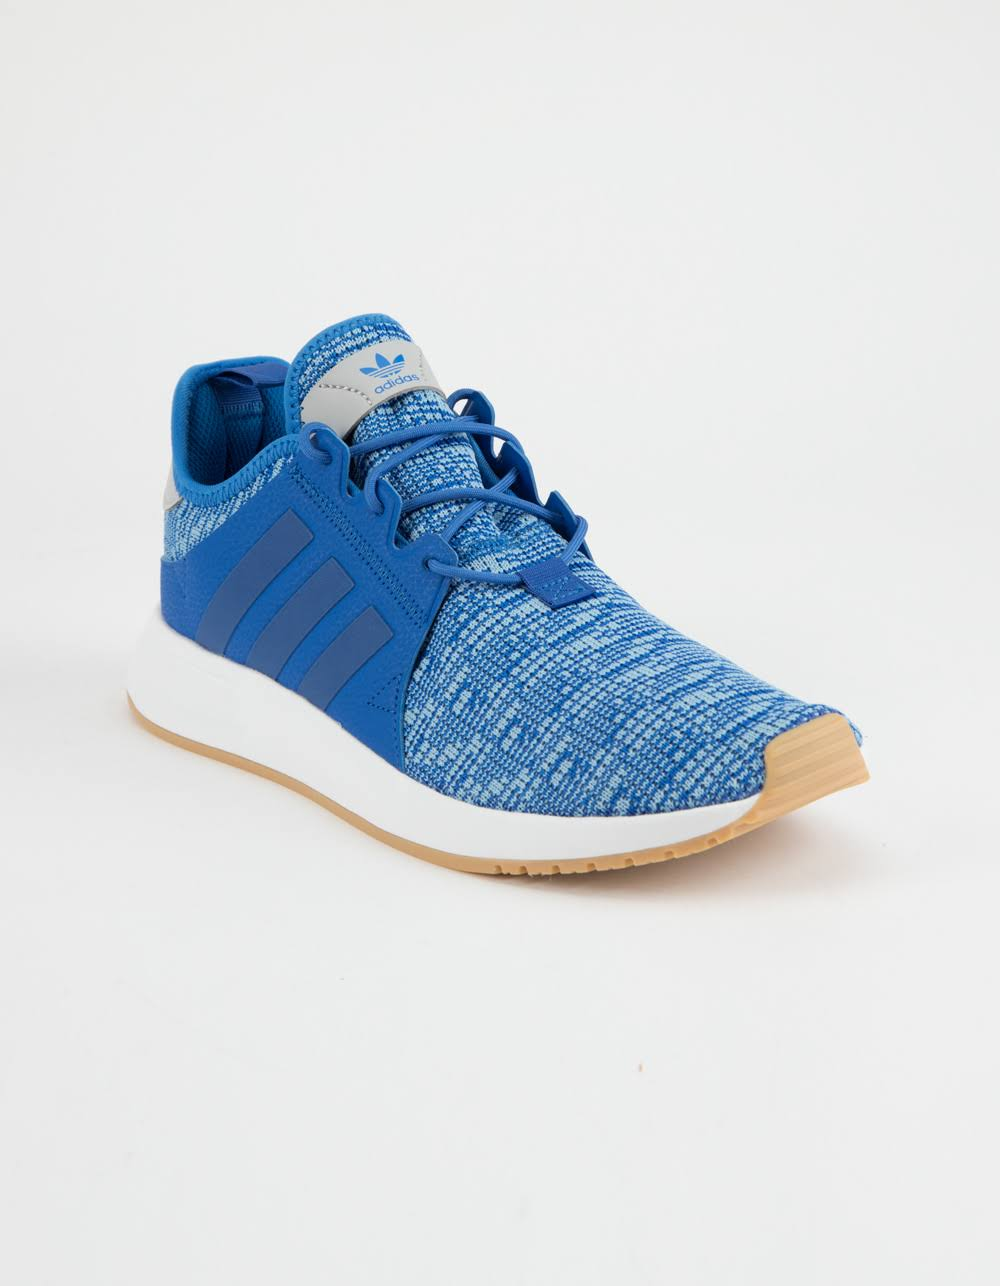 Blue Casual Line From 9 Sneakers Men's plr X Adidas Finish xqC86wBtp